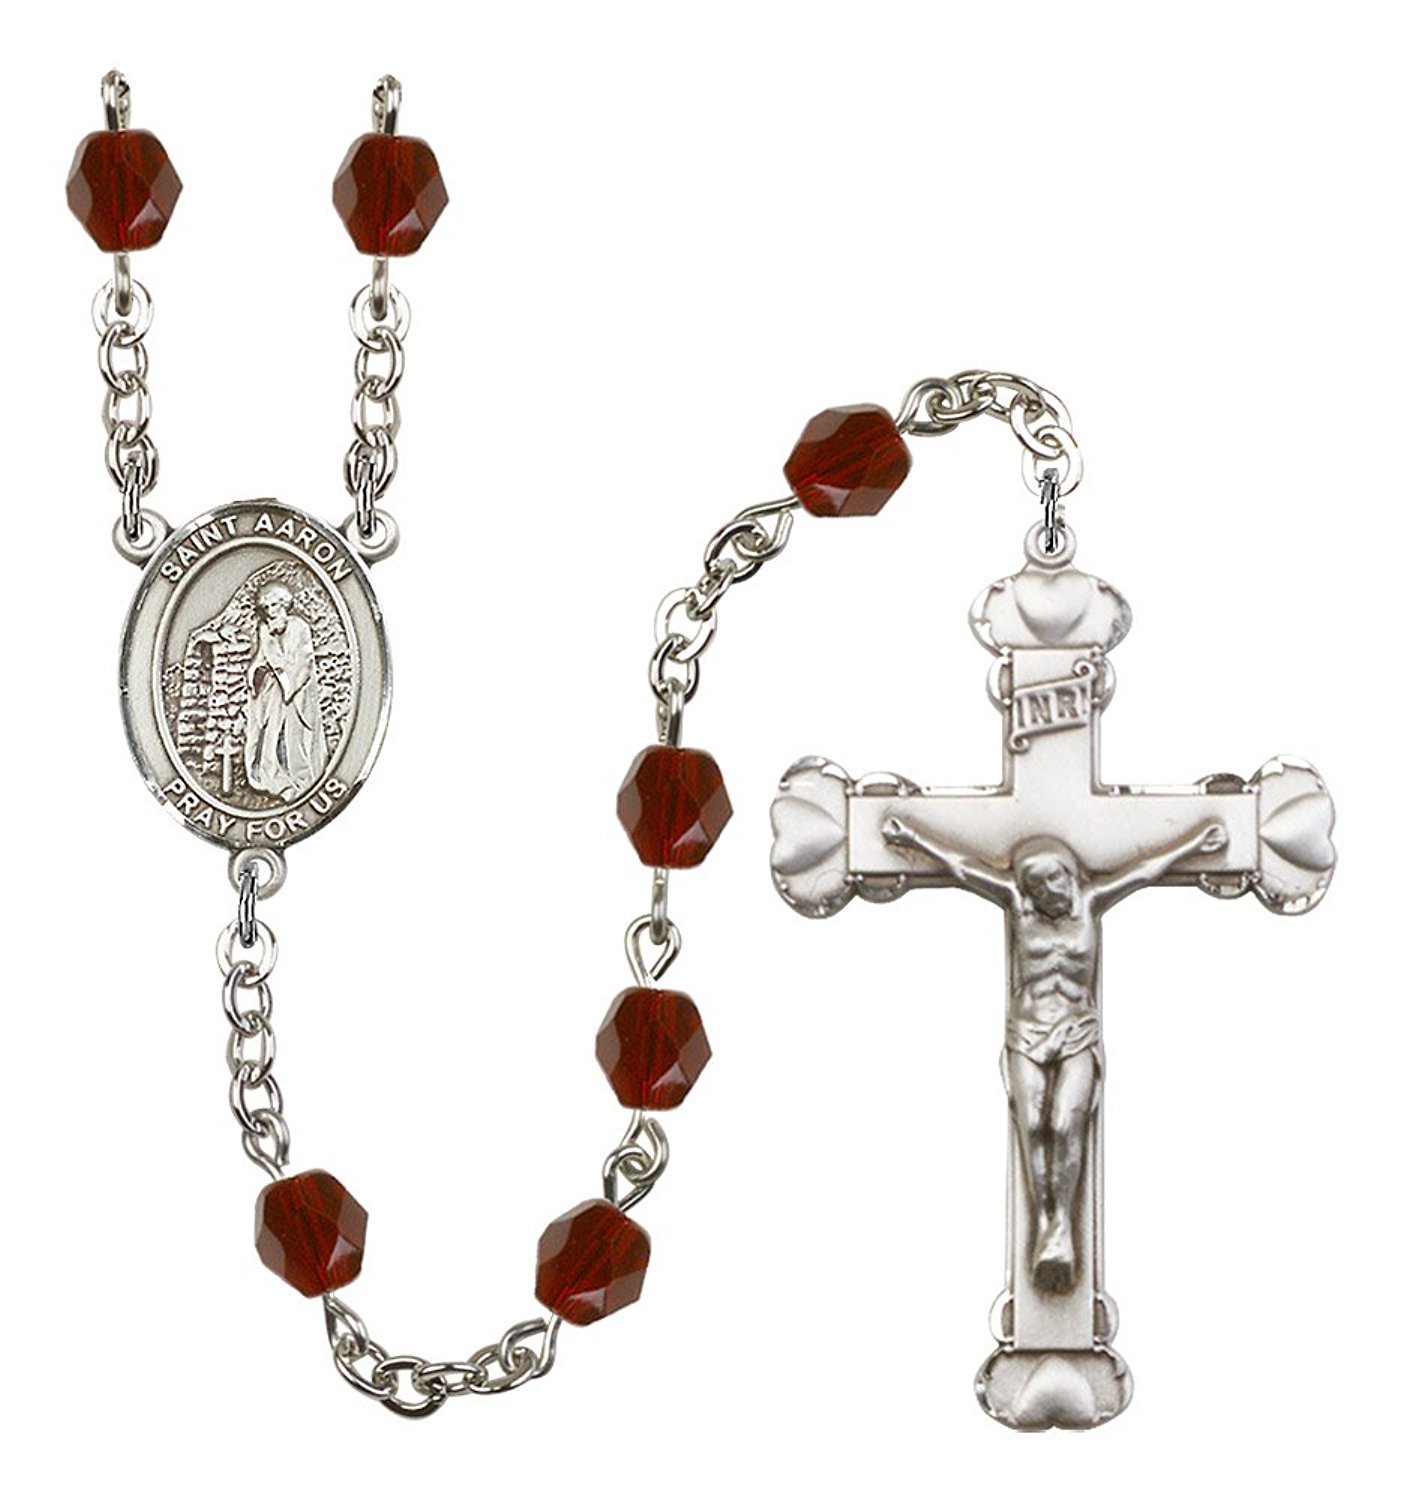 Silver Finish St. Aaron Rosary with 6mm Garnet Color Fire Polished Beads, St. Aaron Center, and 1 5/8 x 1 inch Crucifix, Gift Boxed